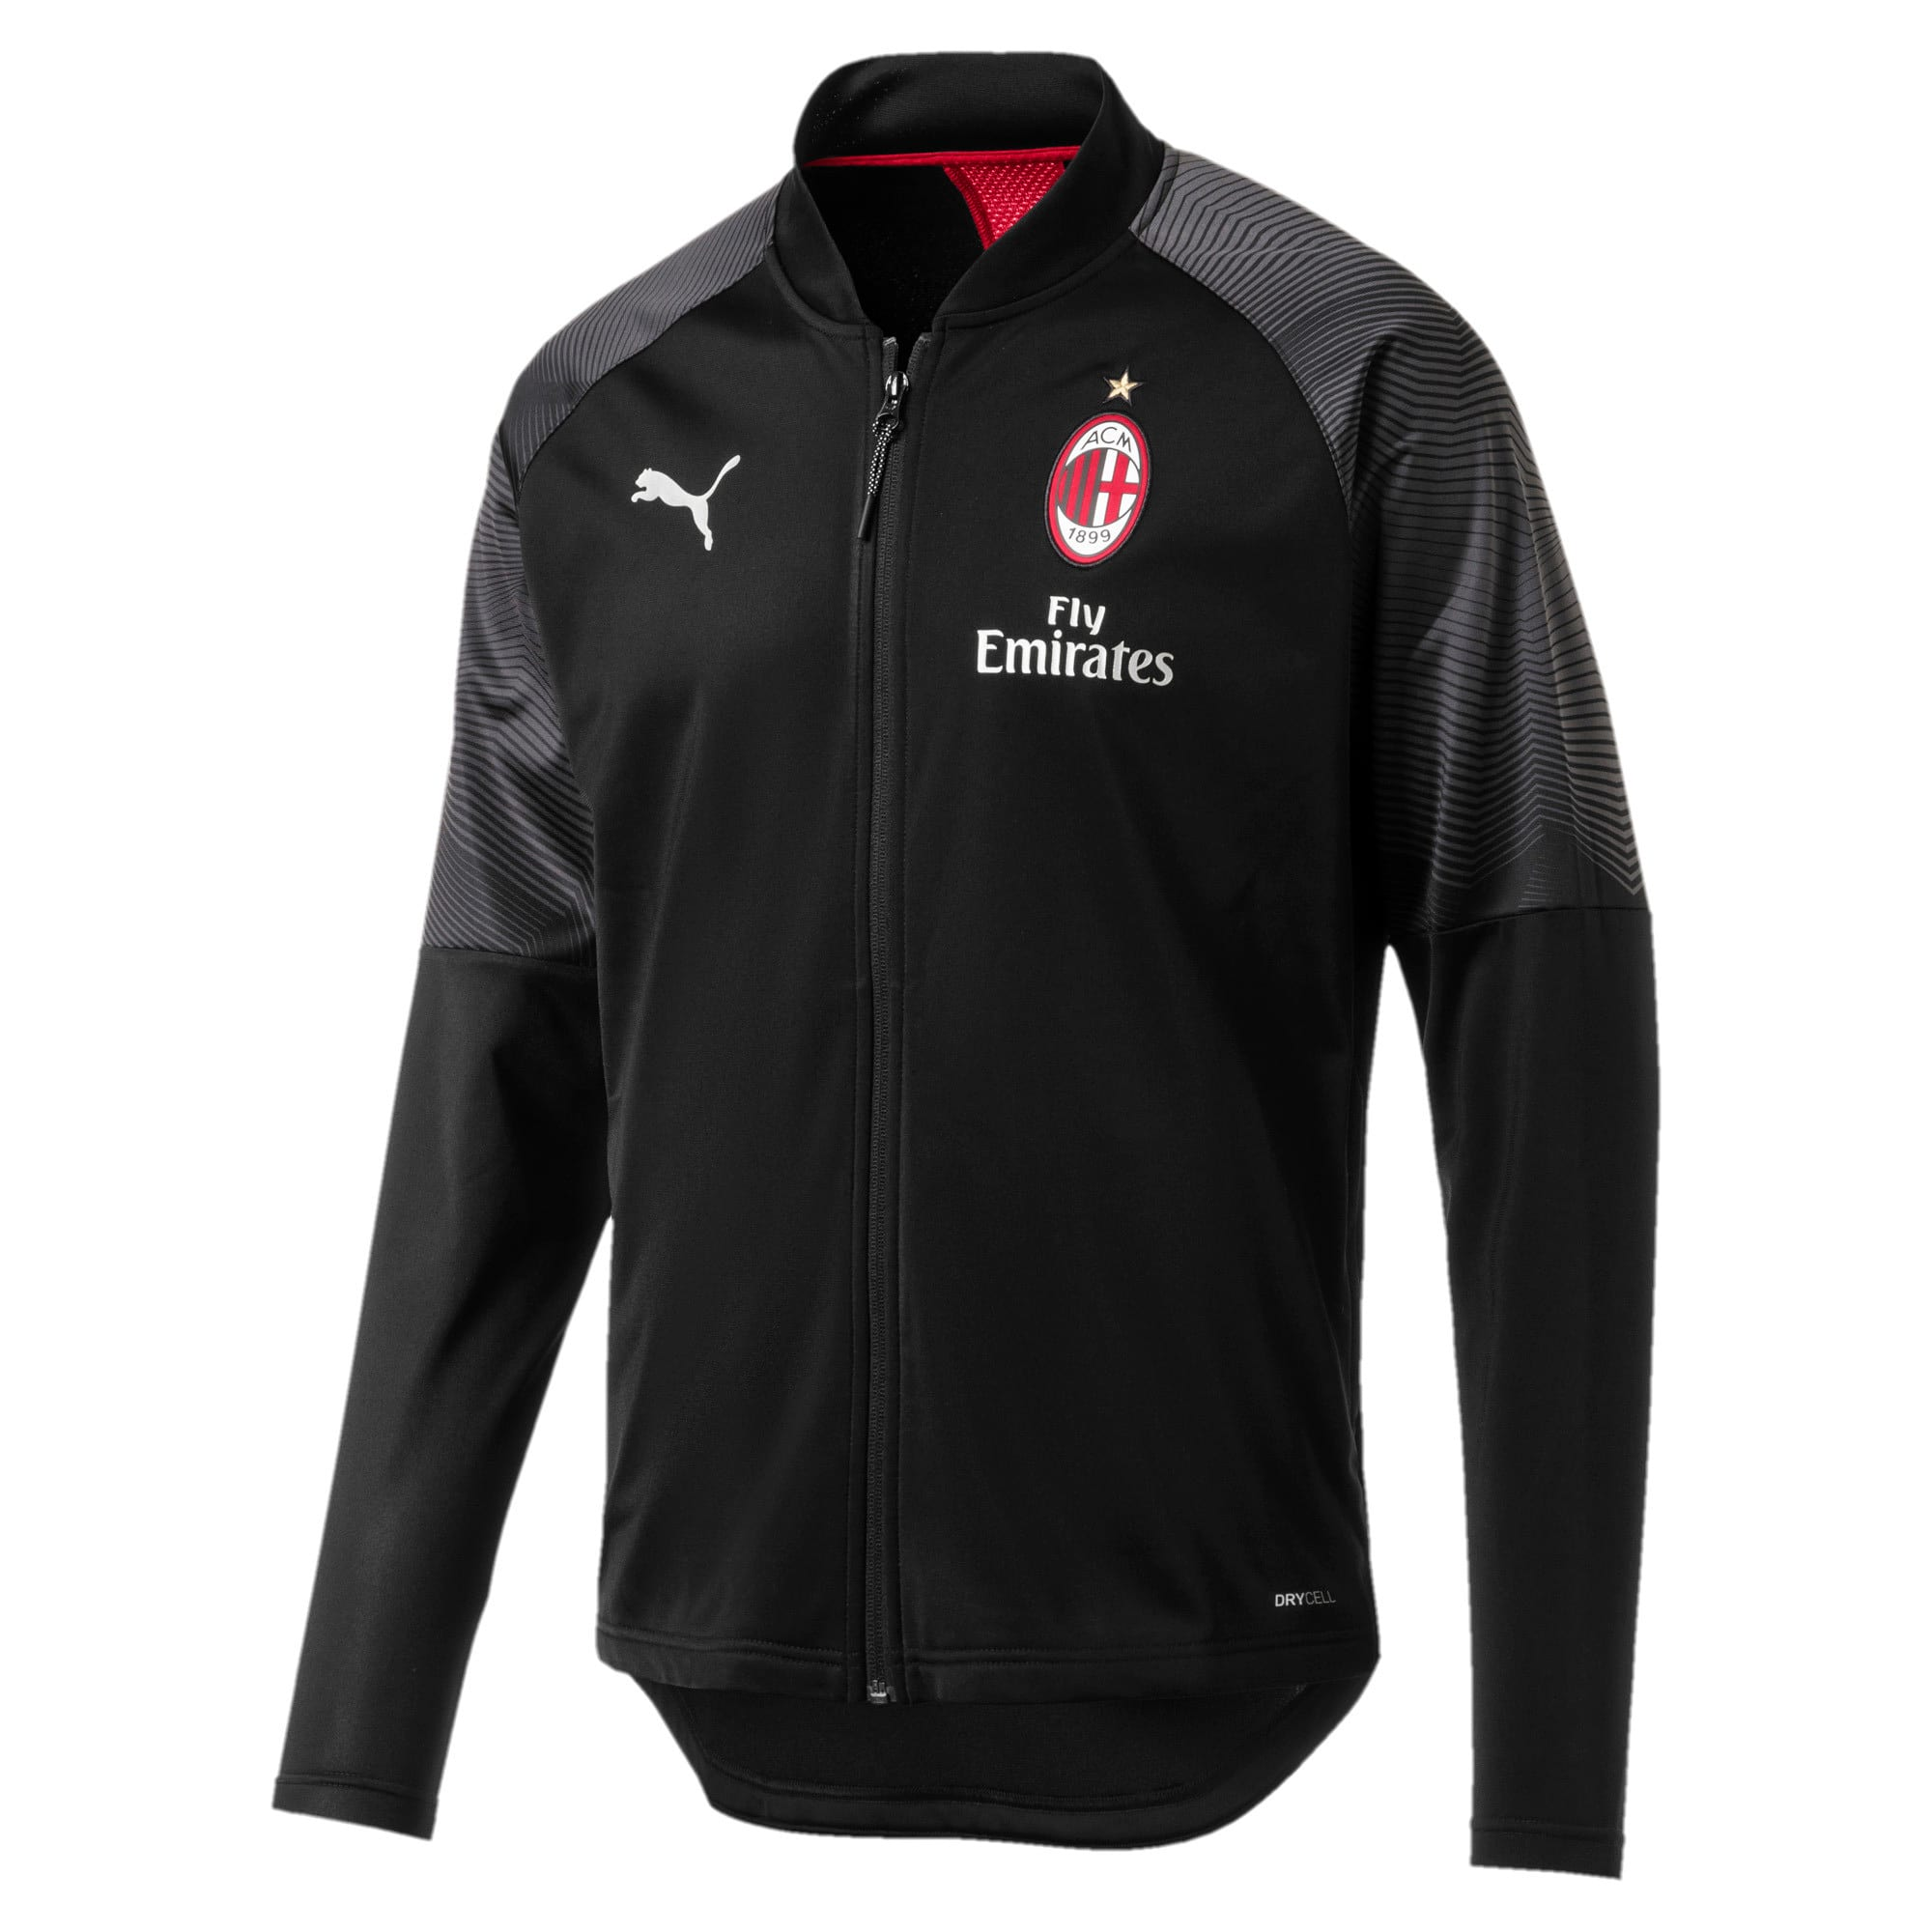 Thumbnail 2 of AC Milan Stadium Men's Poly Jacket, Puma Black-Tango Red, medium